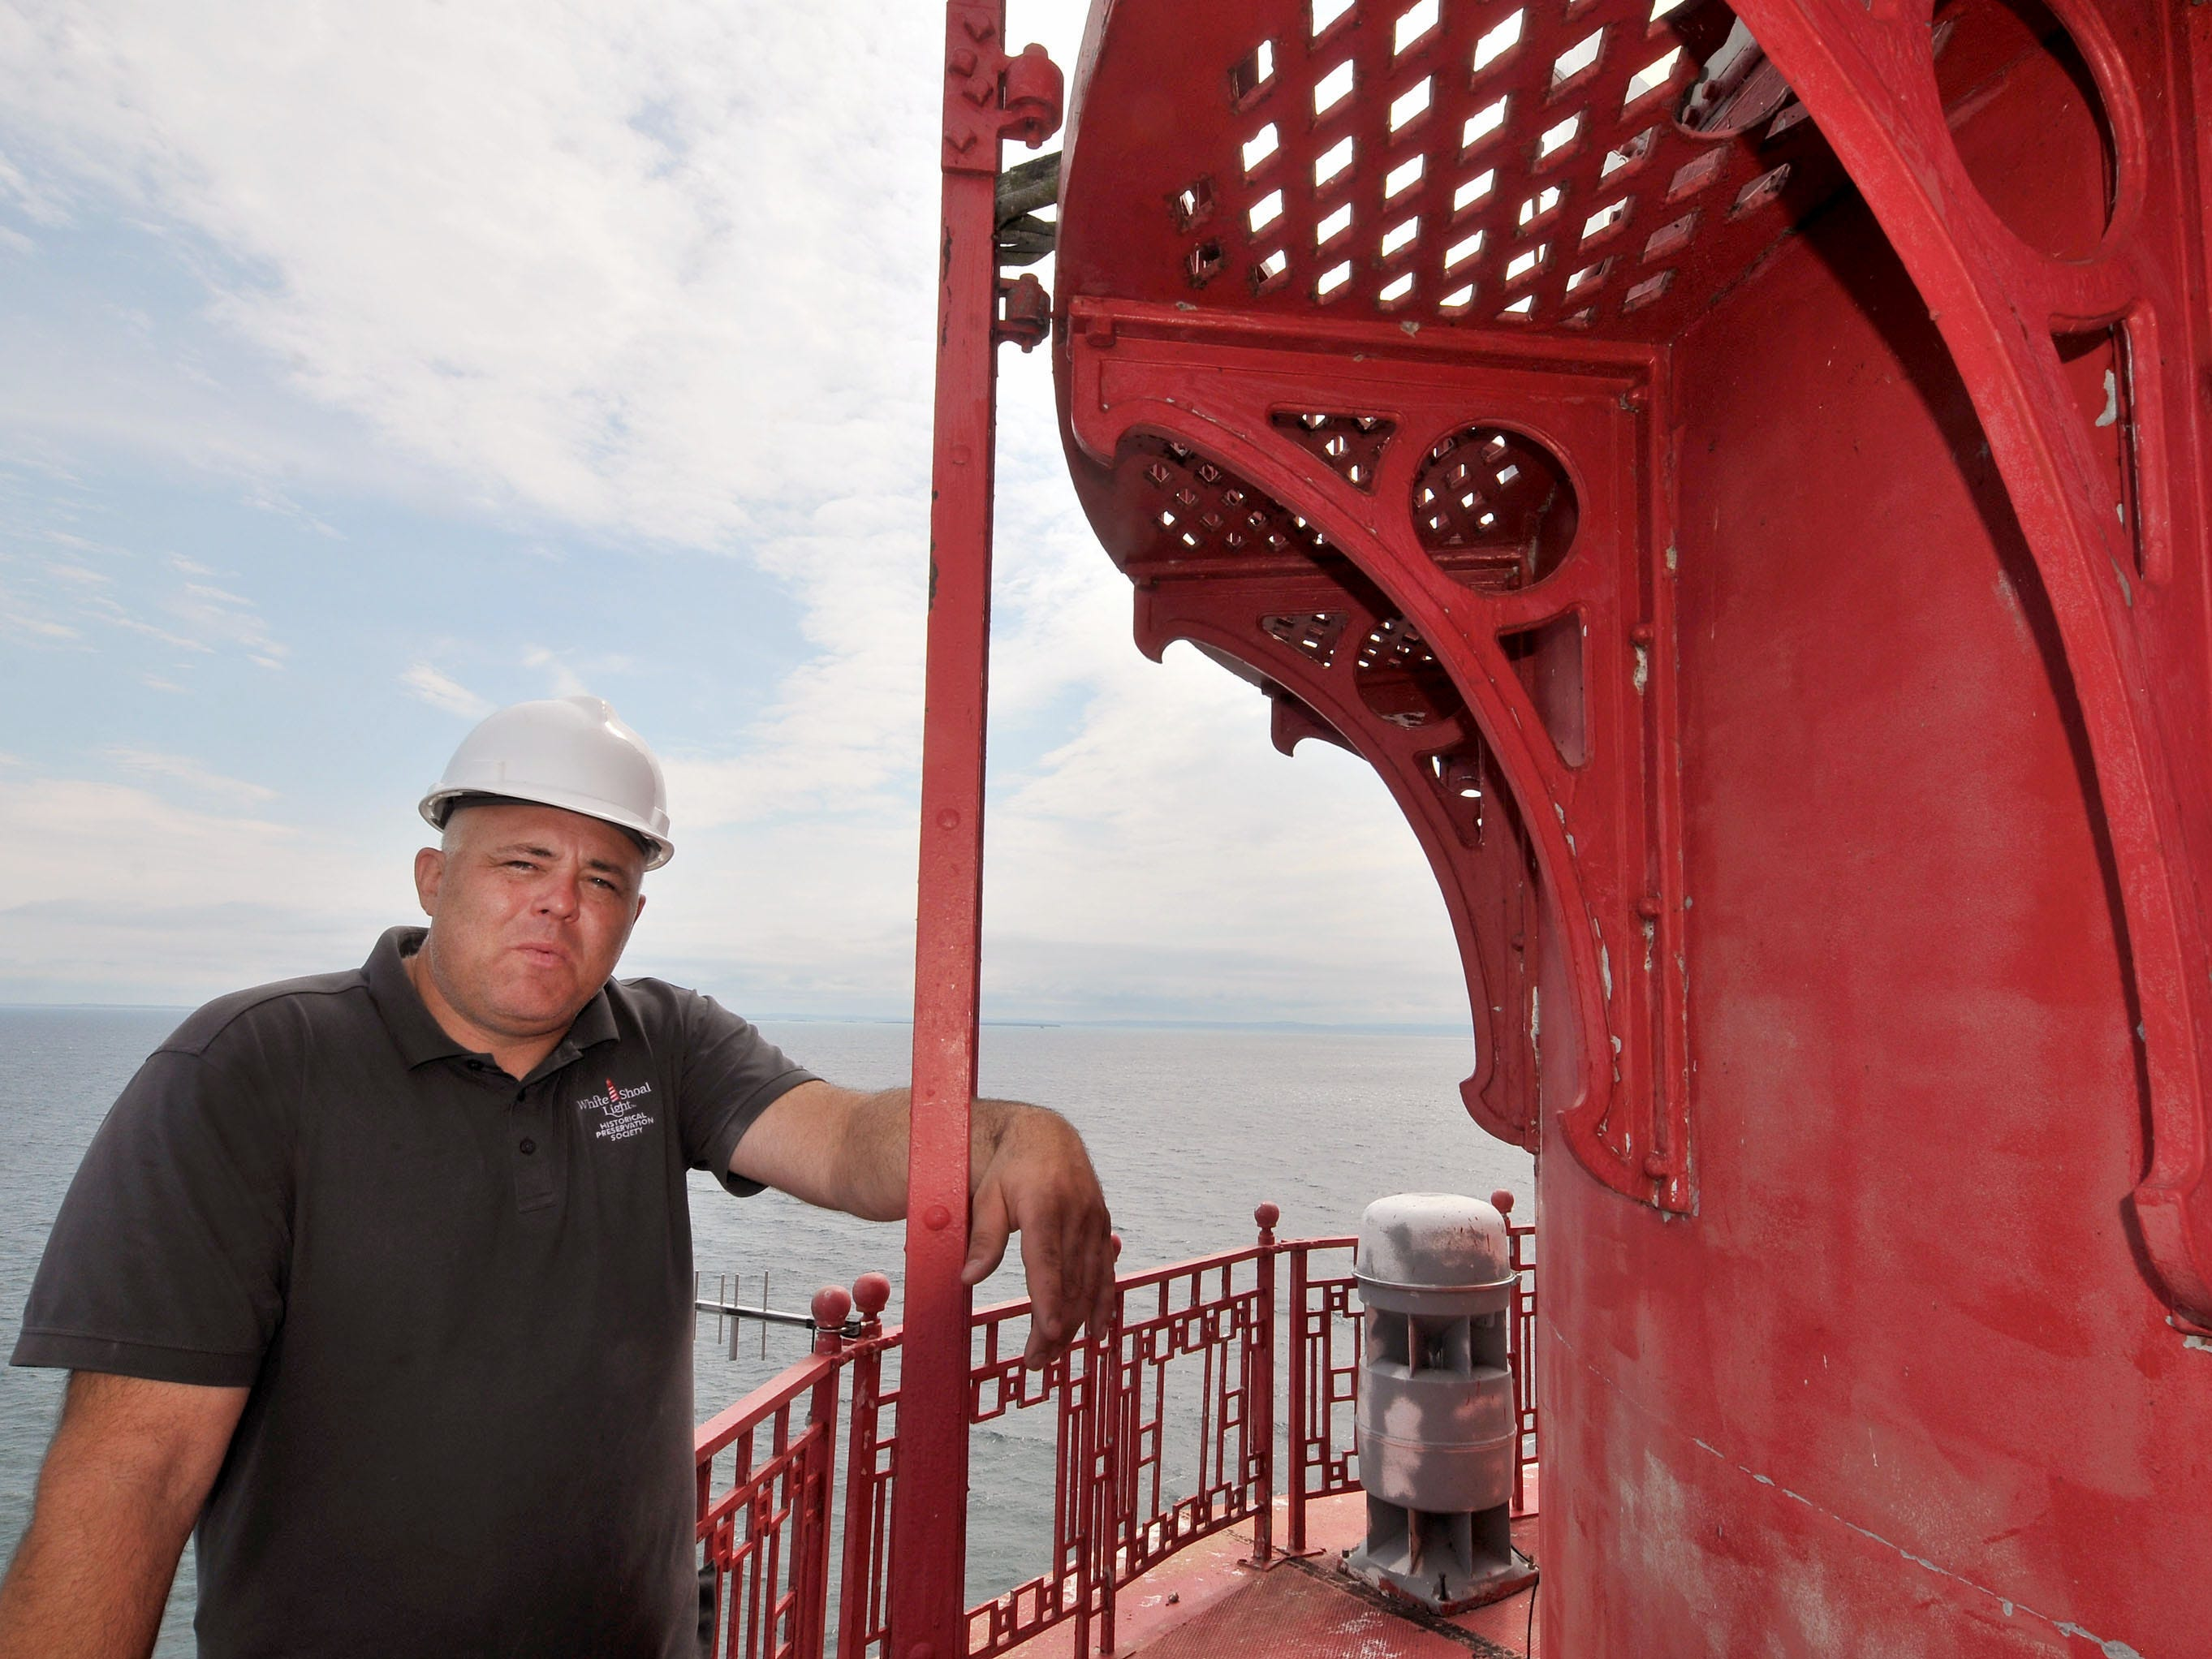 Co-owner Brent Tompkins of Traverse City stands on the catwalk at the White Shoal Lighthouse. He says this lighthouse is the only one on the Great Lakes using lightweight aluminum trim instead of cast iron.